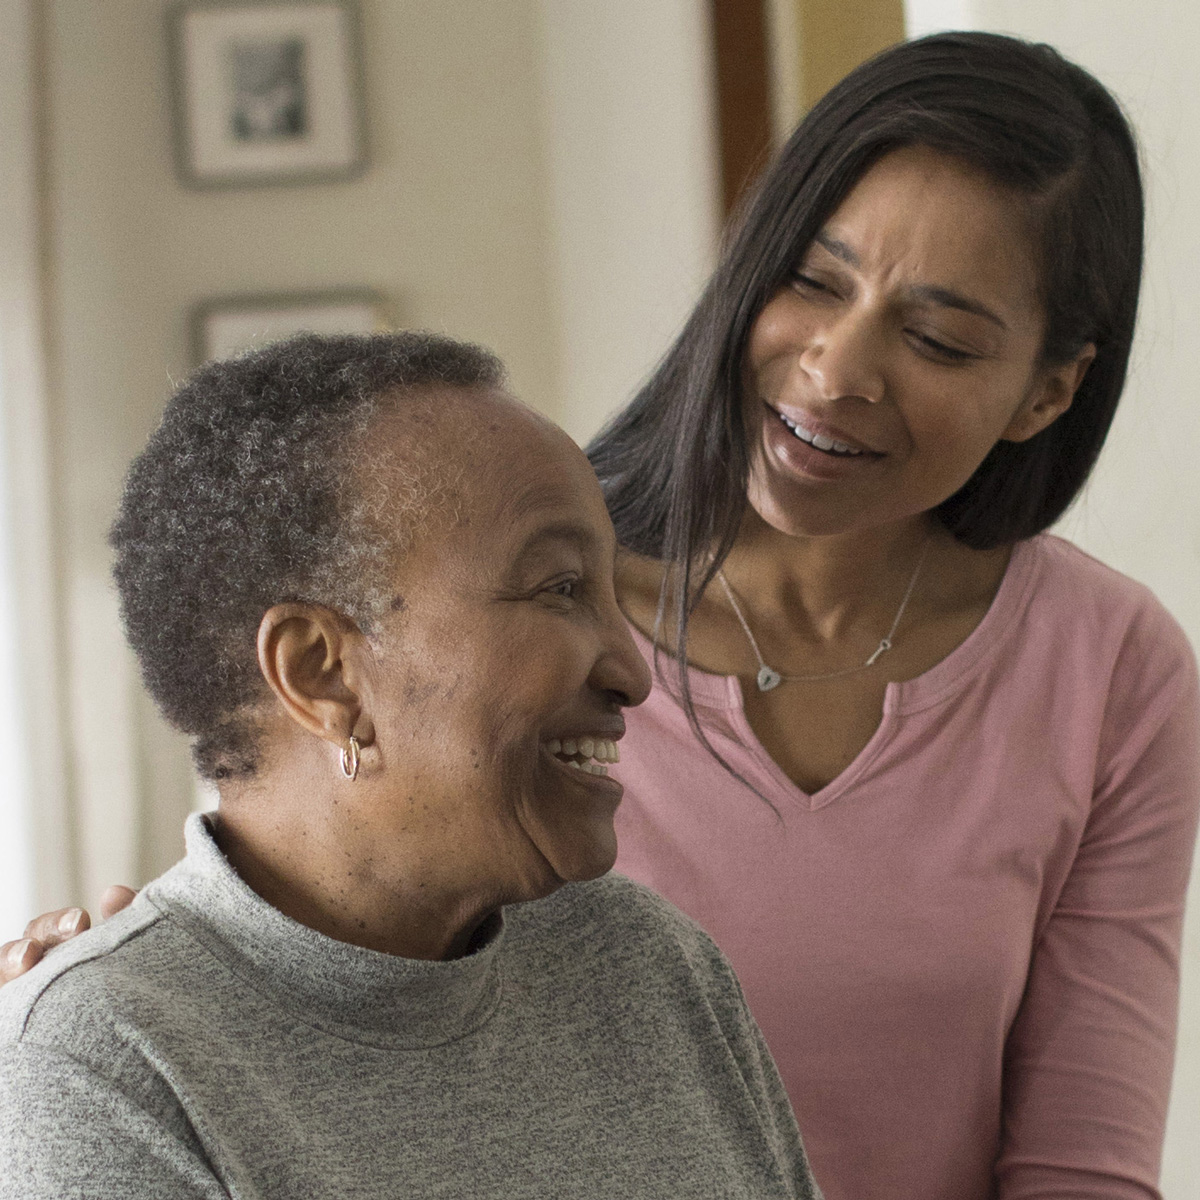 A caregiver and her loved one laugh together